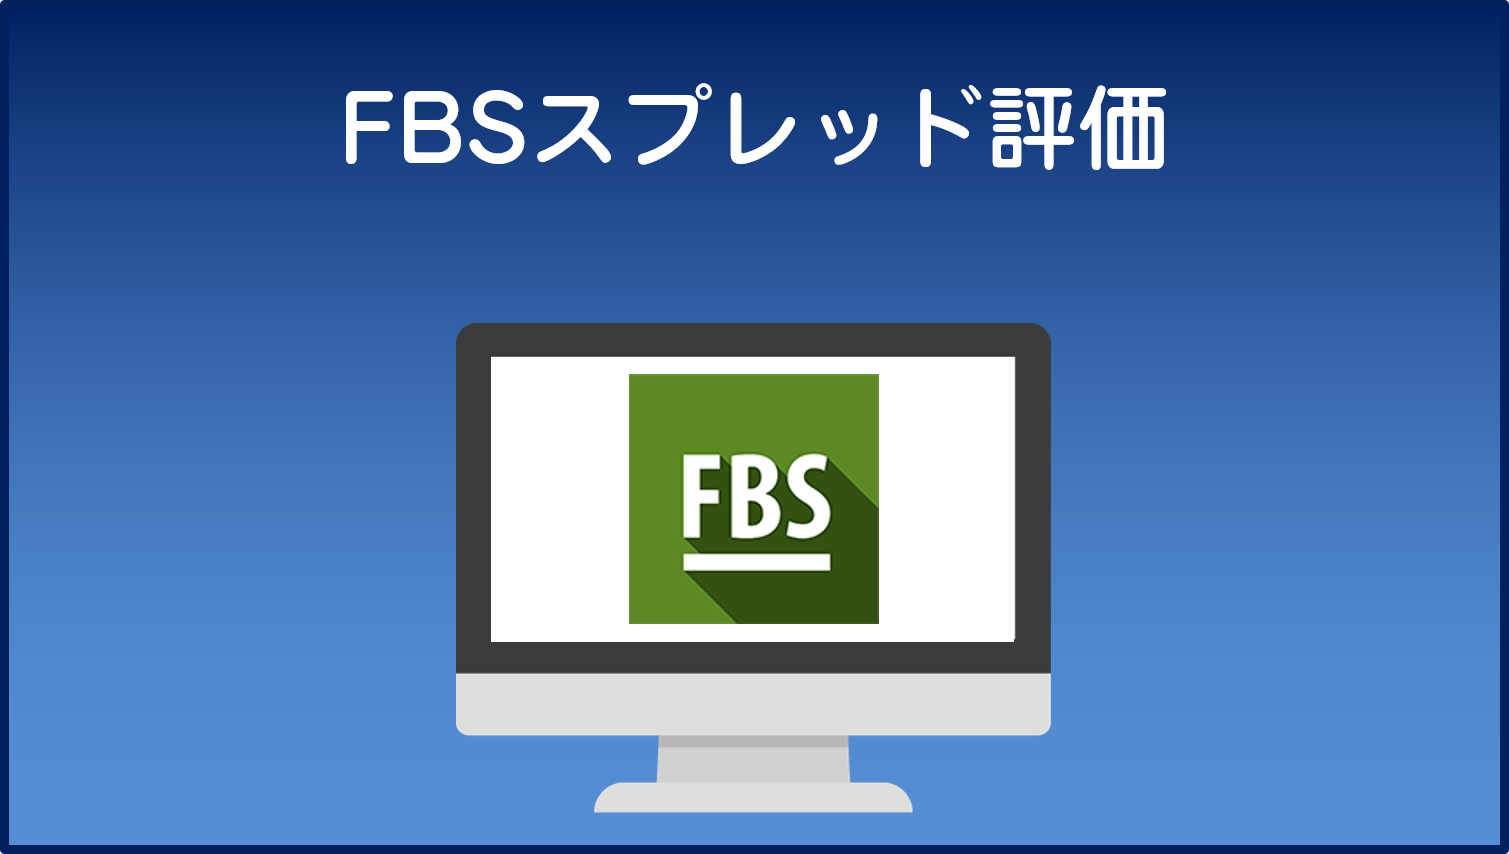 FBSスプレッド評価